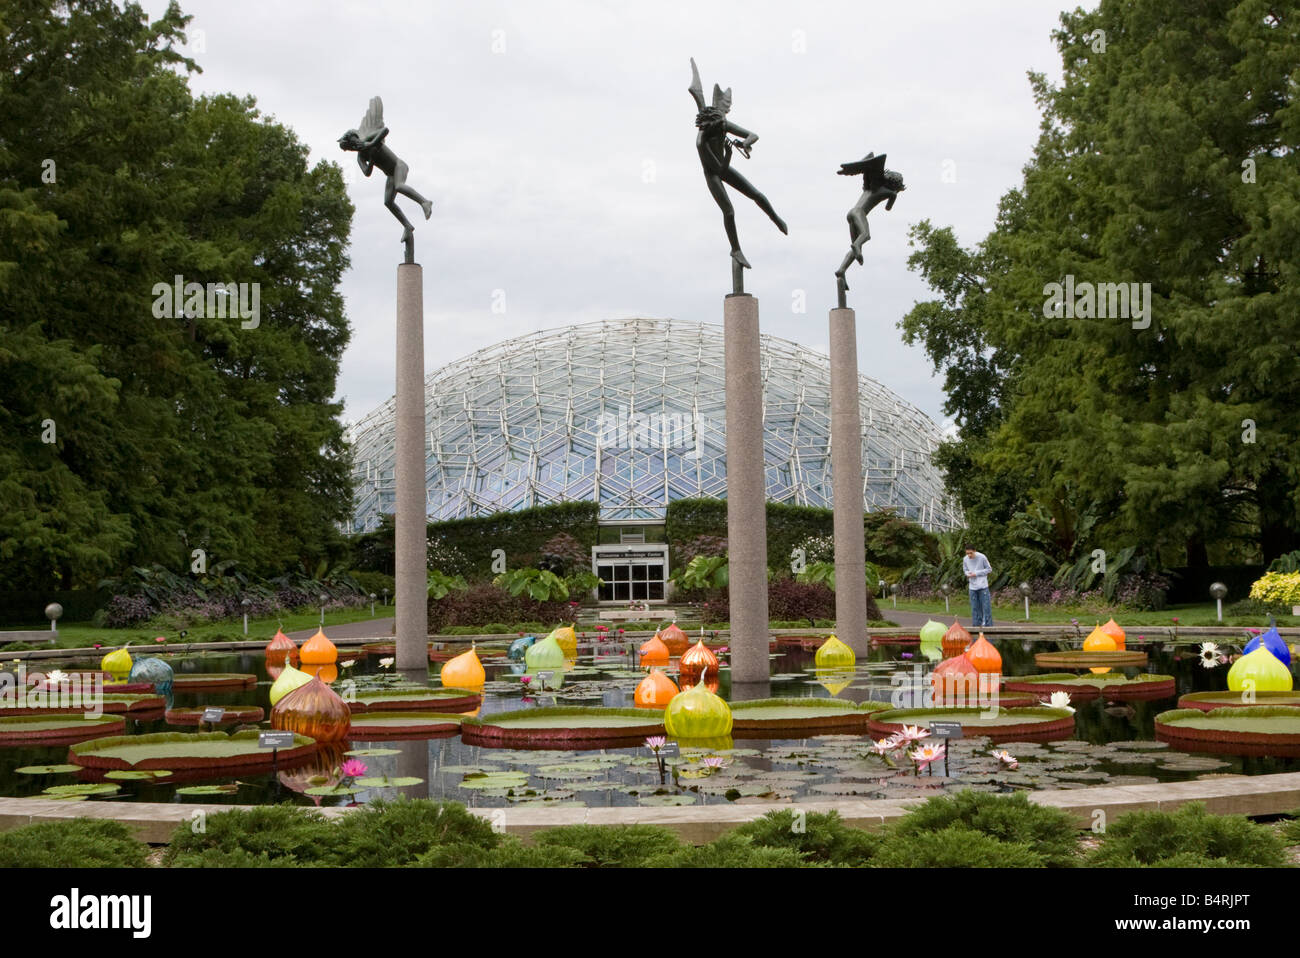 St Louis Missouri Missouri Botanical Garden Sculpture Carl Stock Photo Royalty Free Image